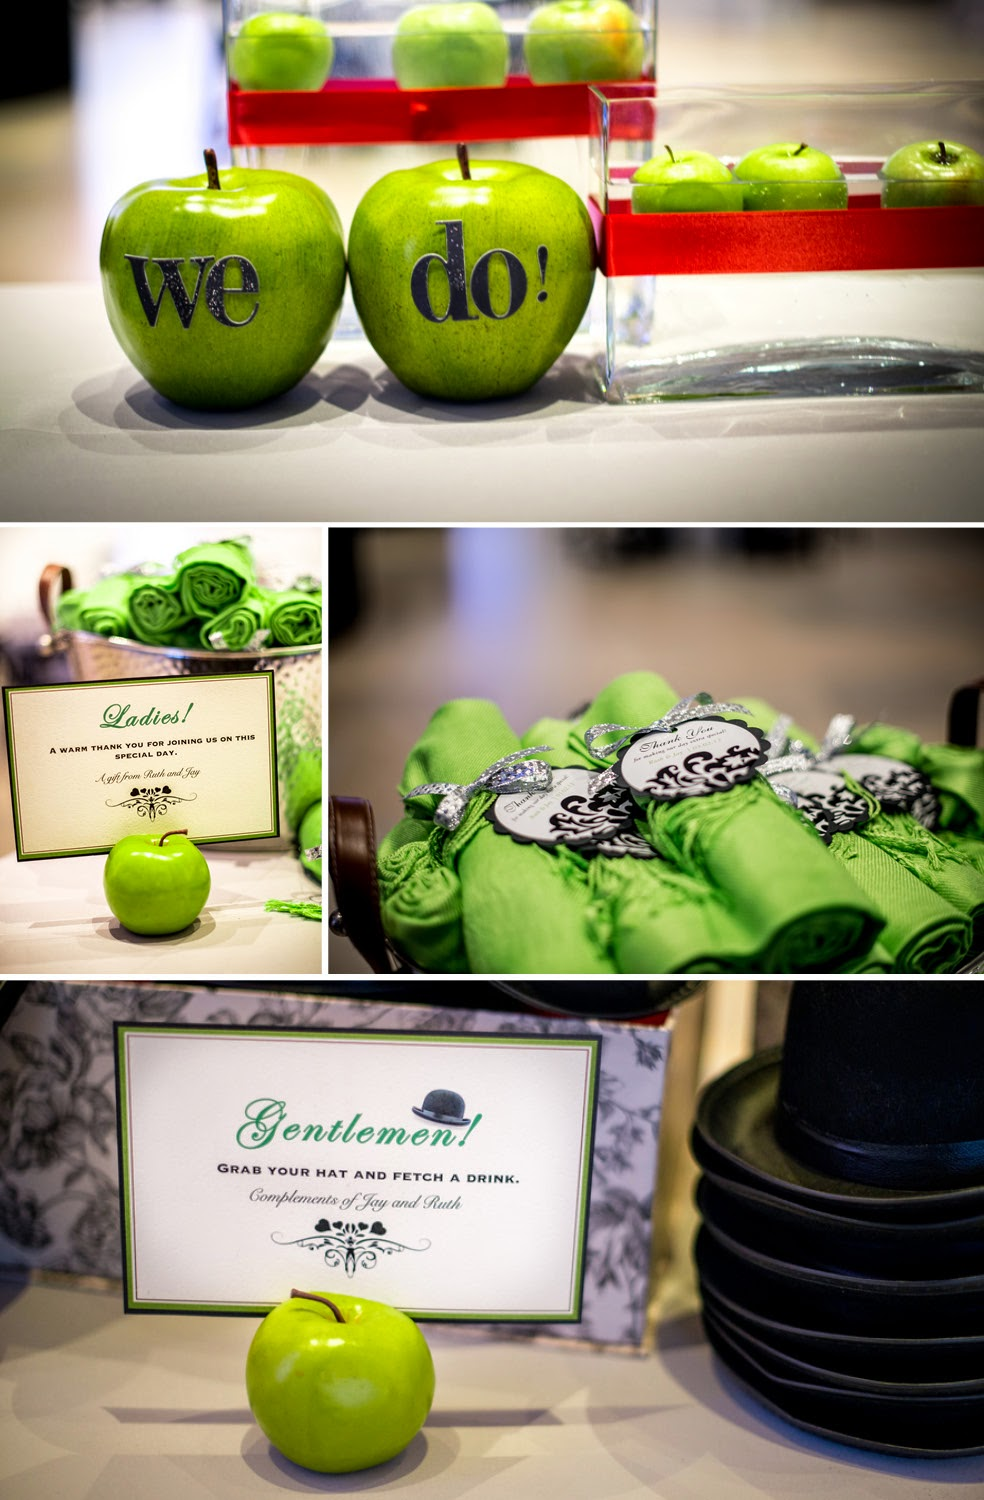 Using green apples in your wedding decor wedding stuff ideas junglespirit